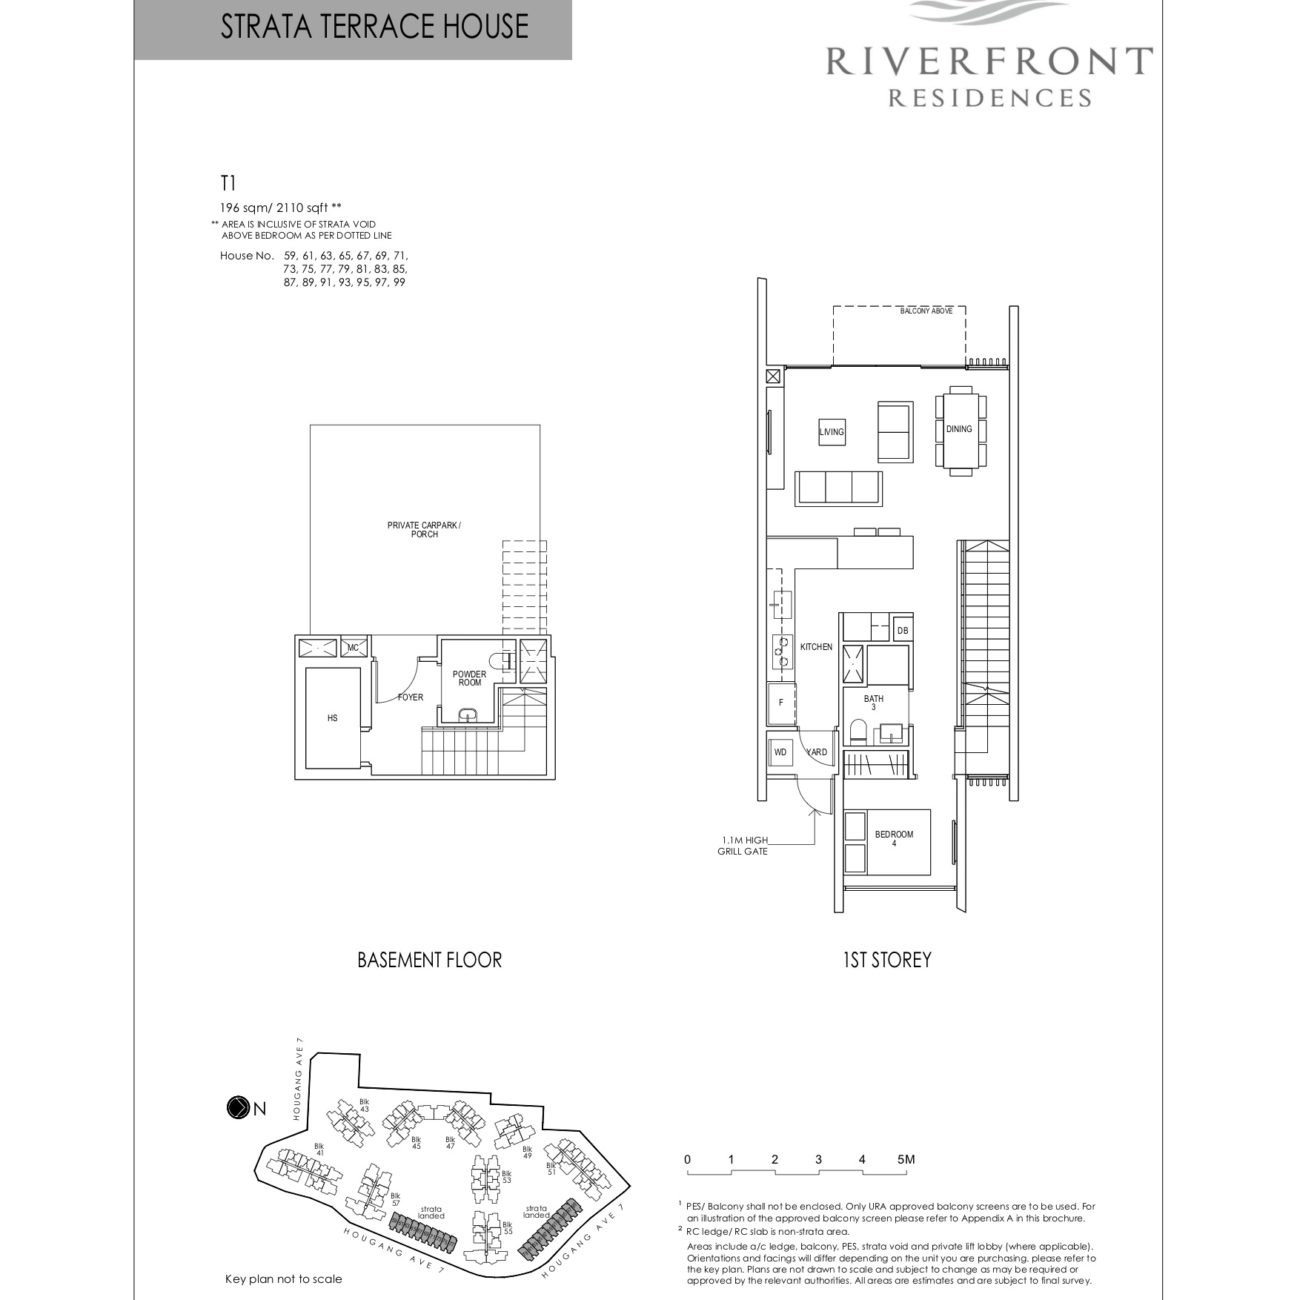 riverfront-residences-floorplan-strata-terrace-1